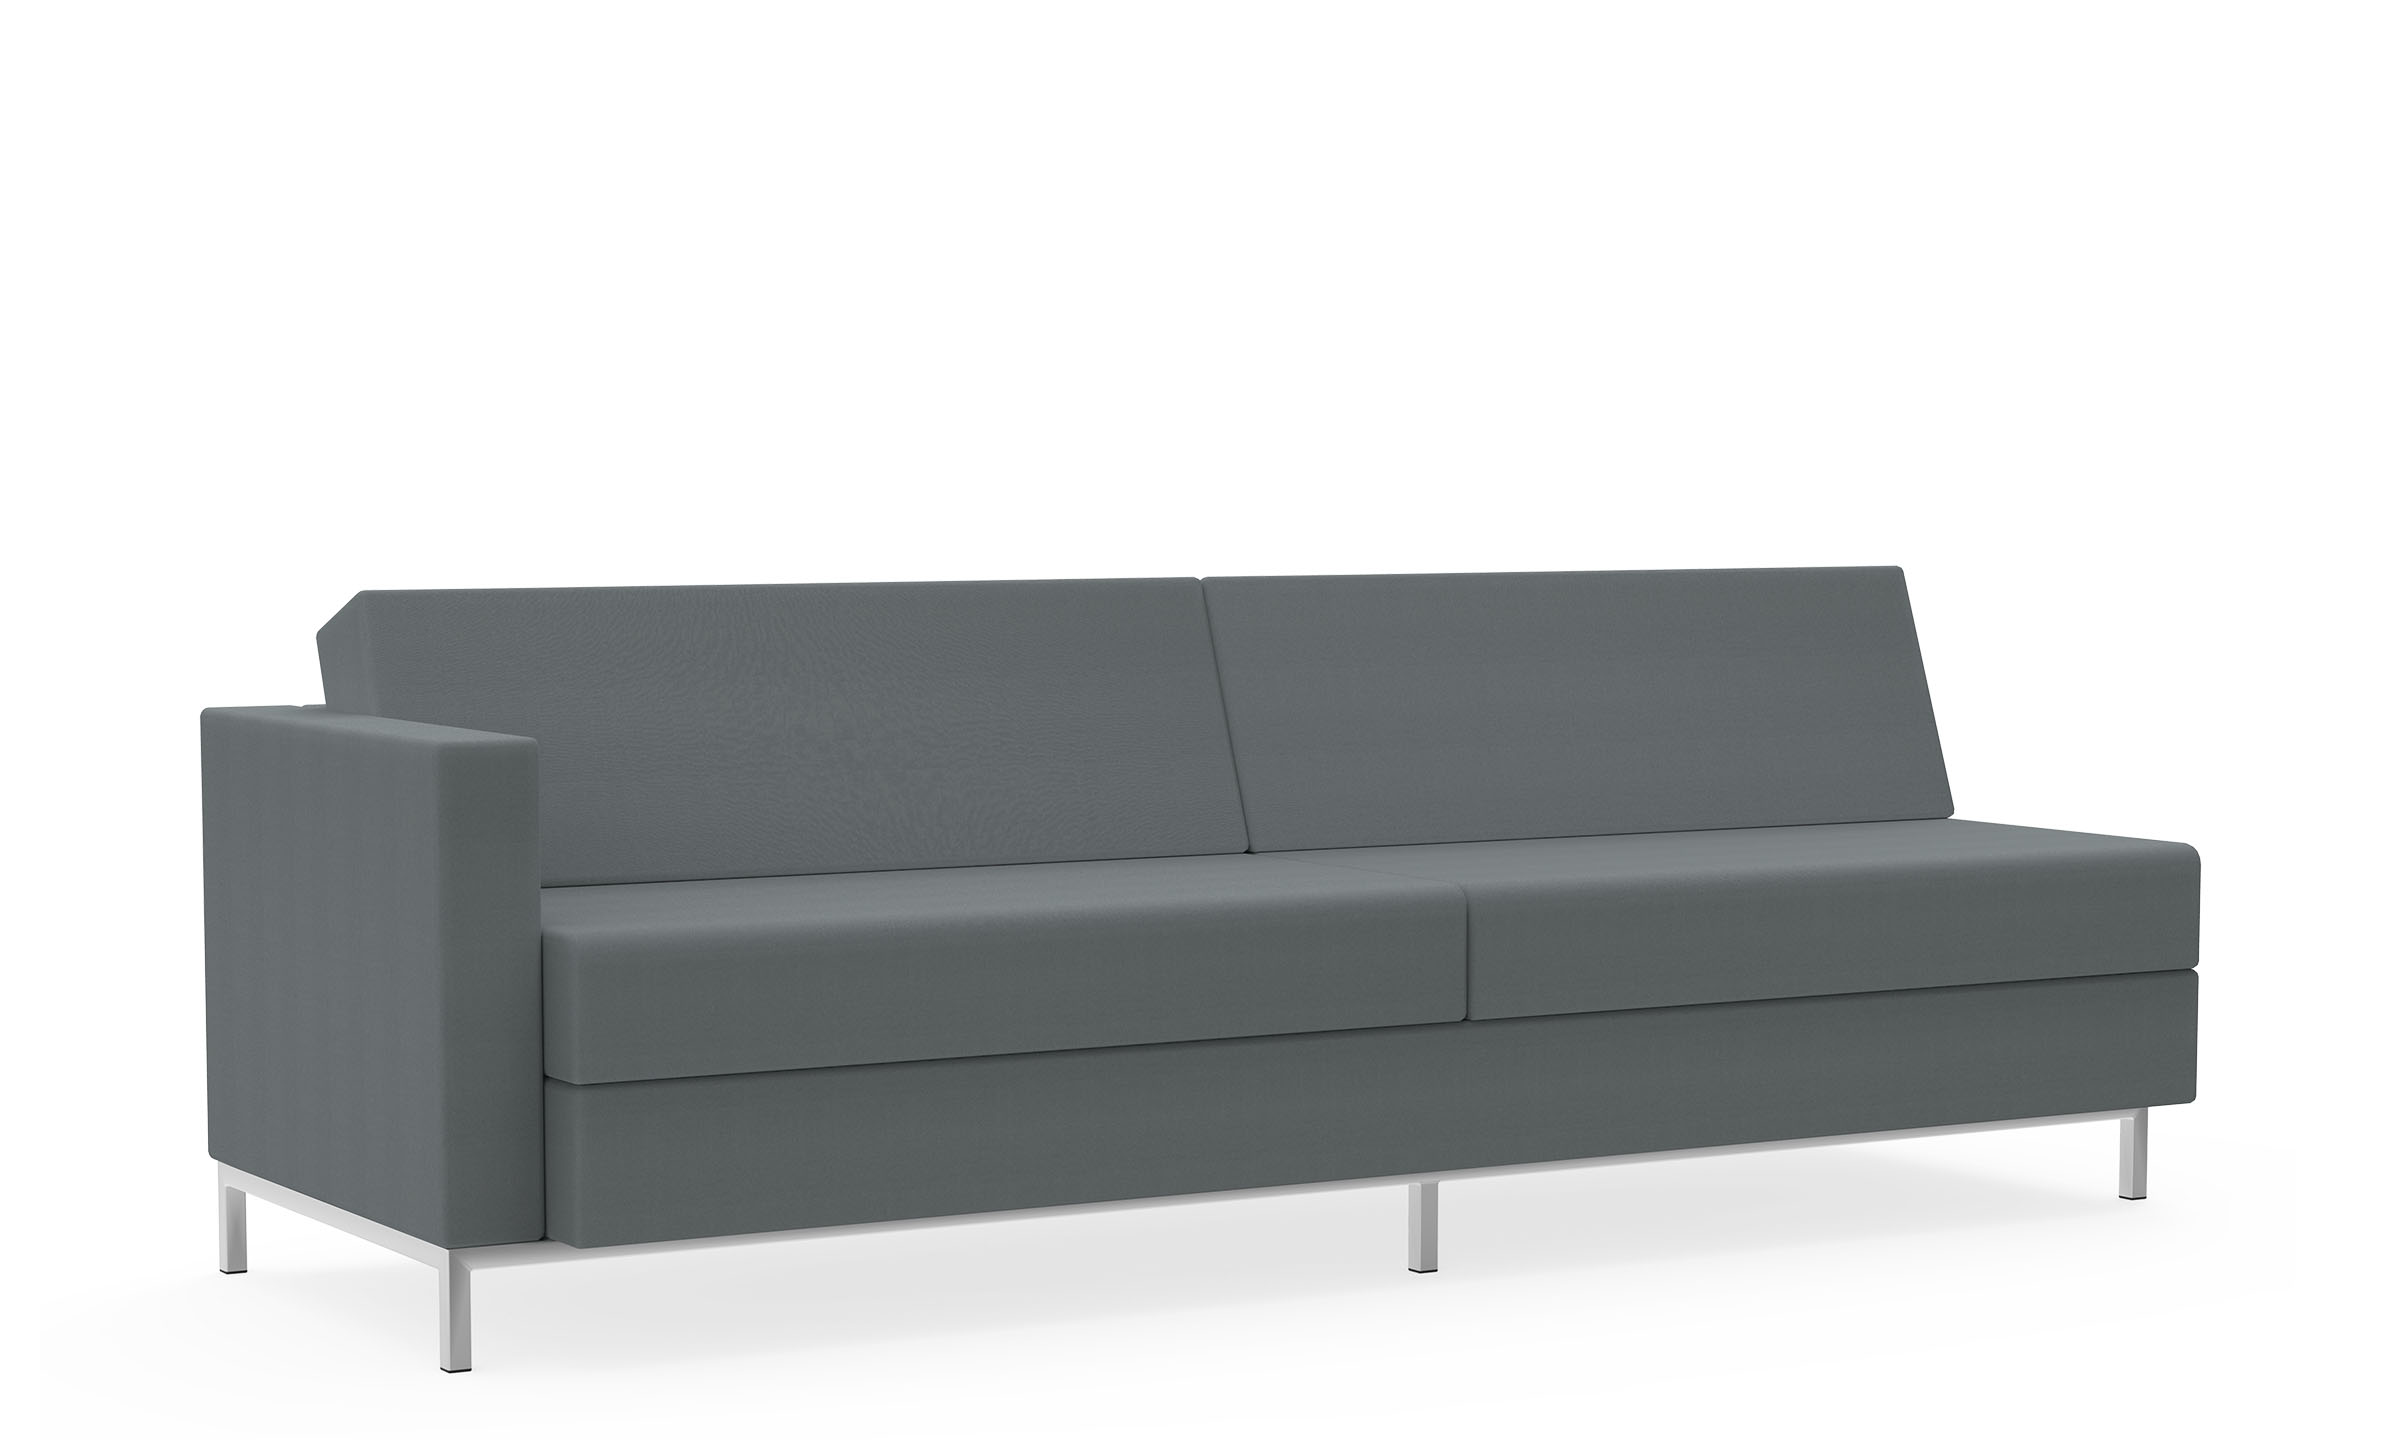 Four-Seat Sofa, Duo Cushions, Right Arm Model Thumbnail